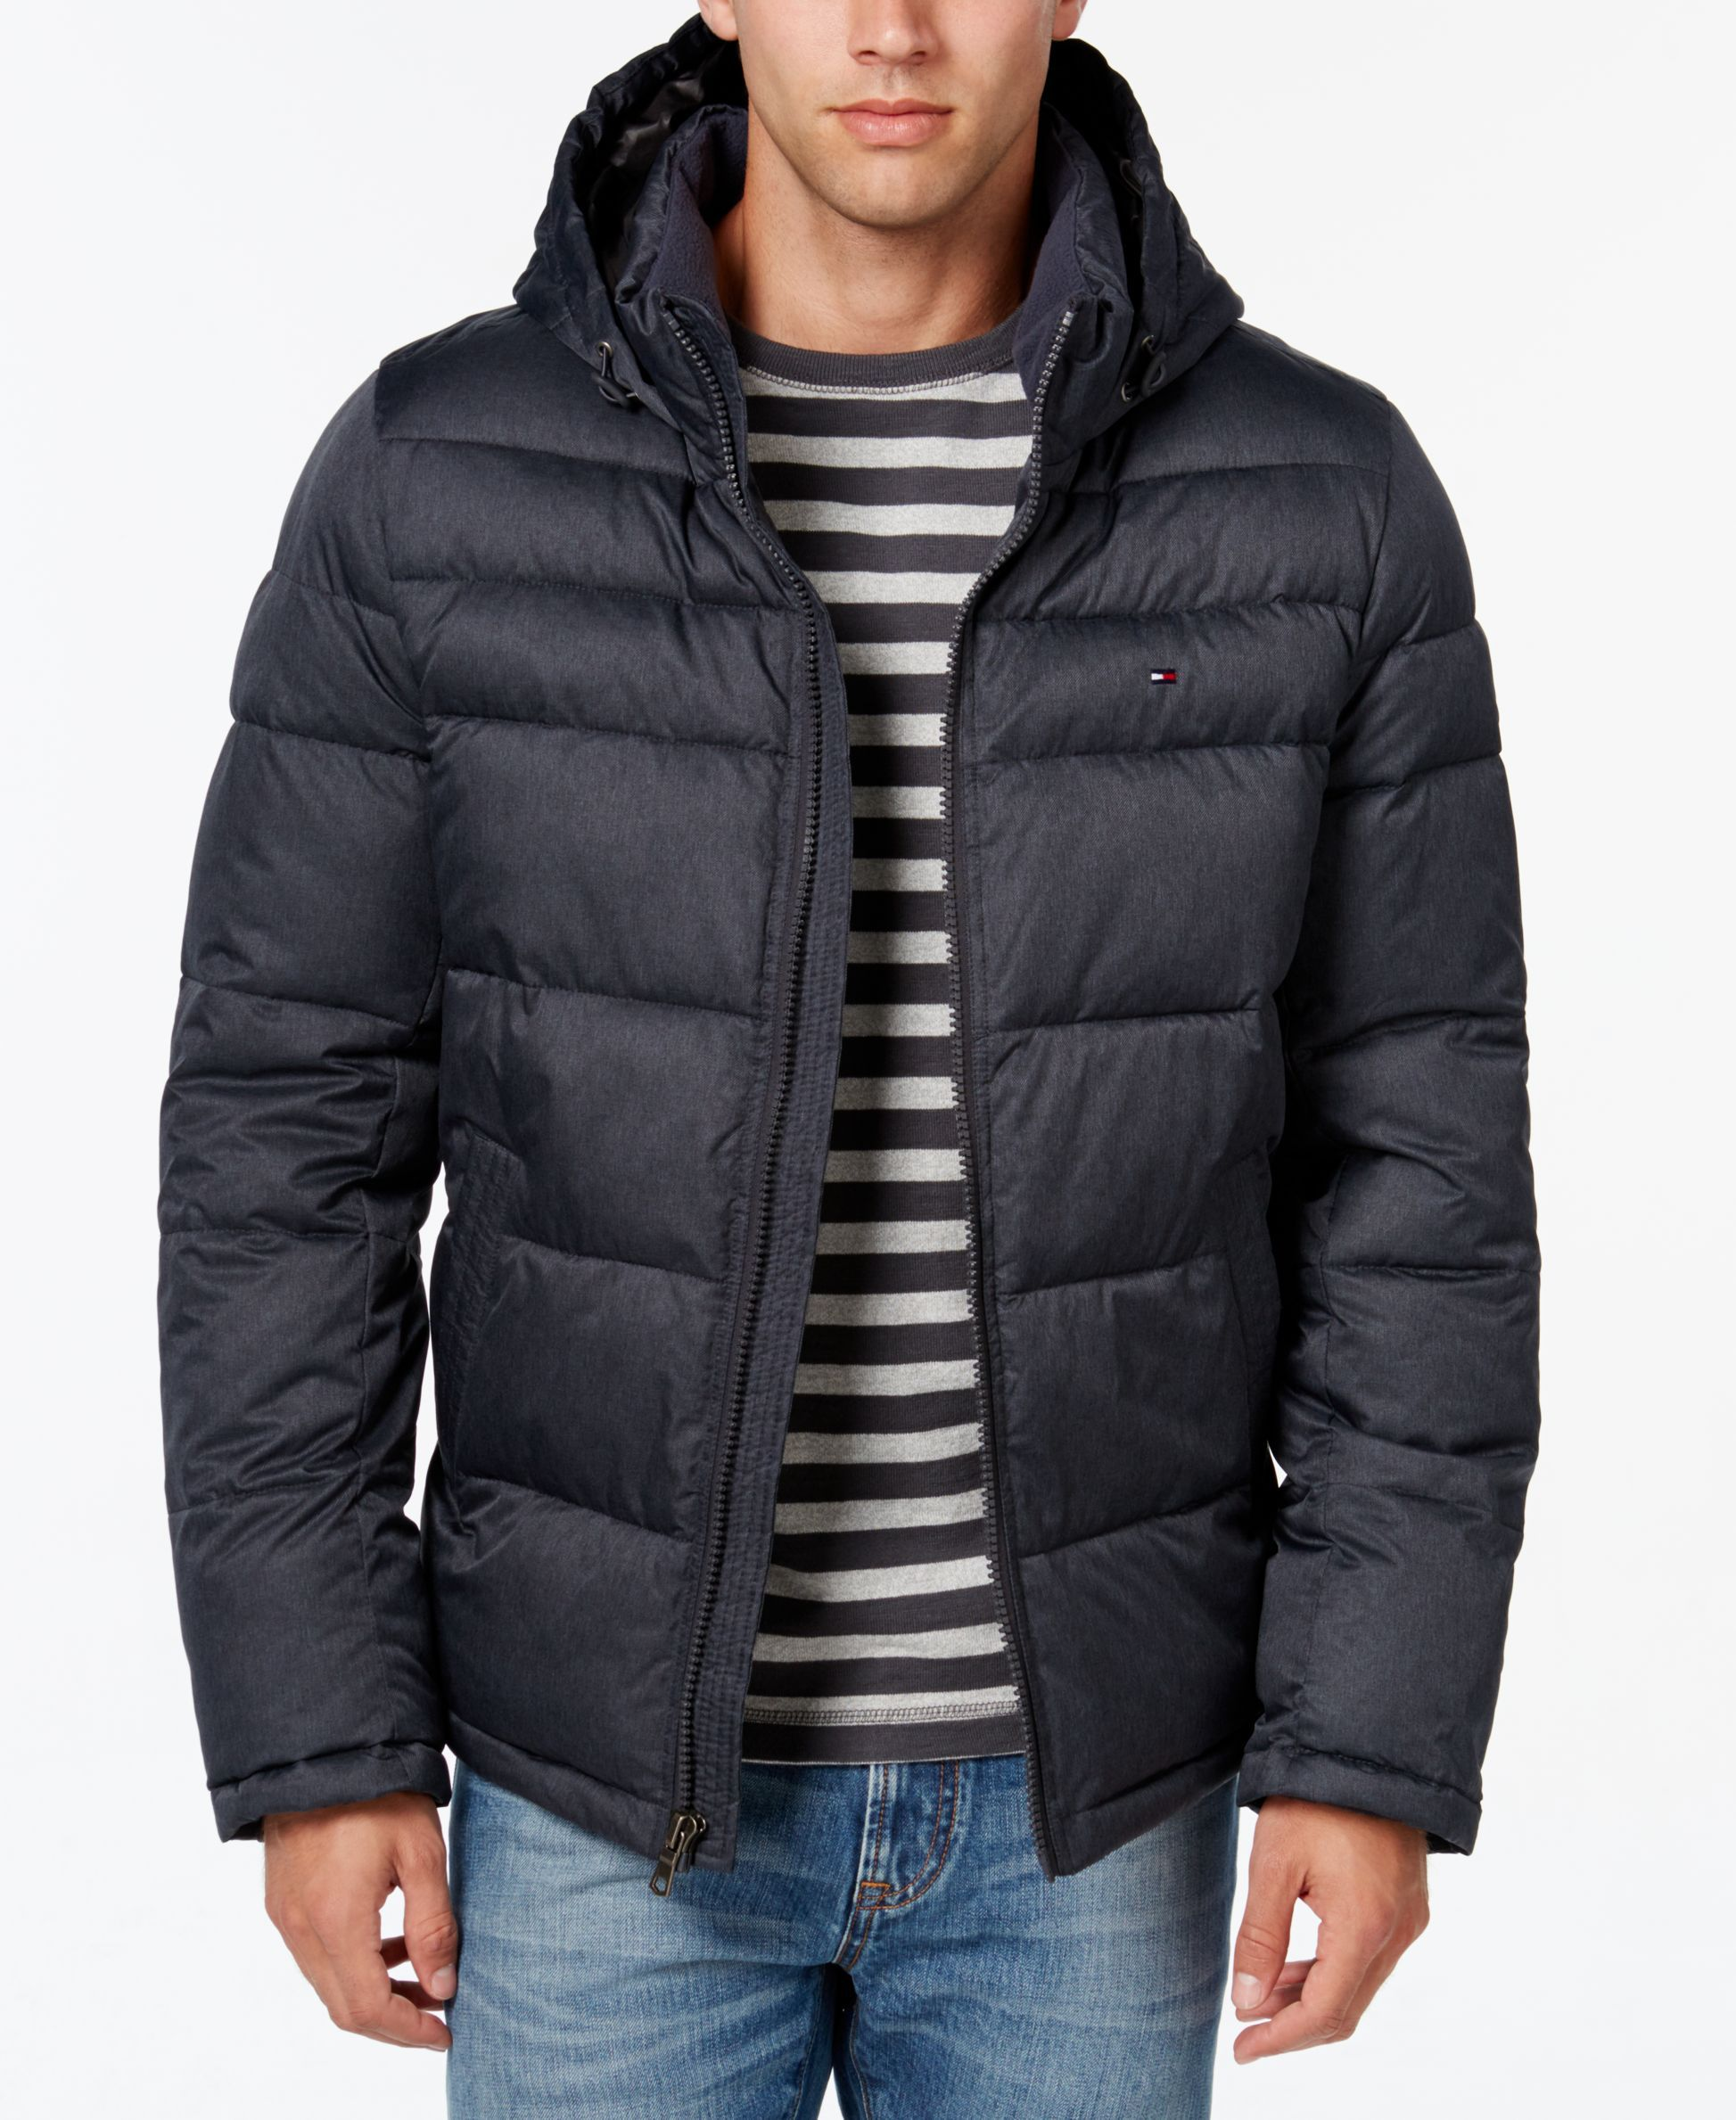 Tommy Hilfiger Mens Quilted Hooded Jacket Bomber